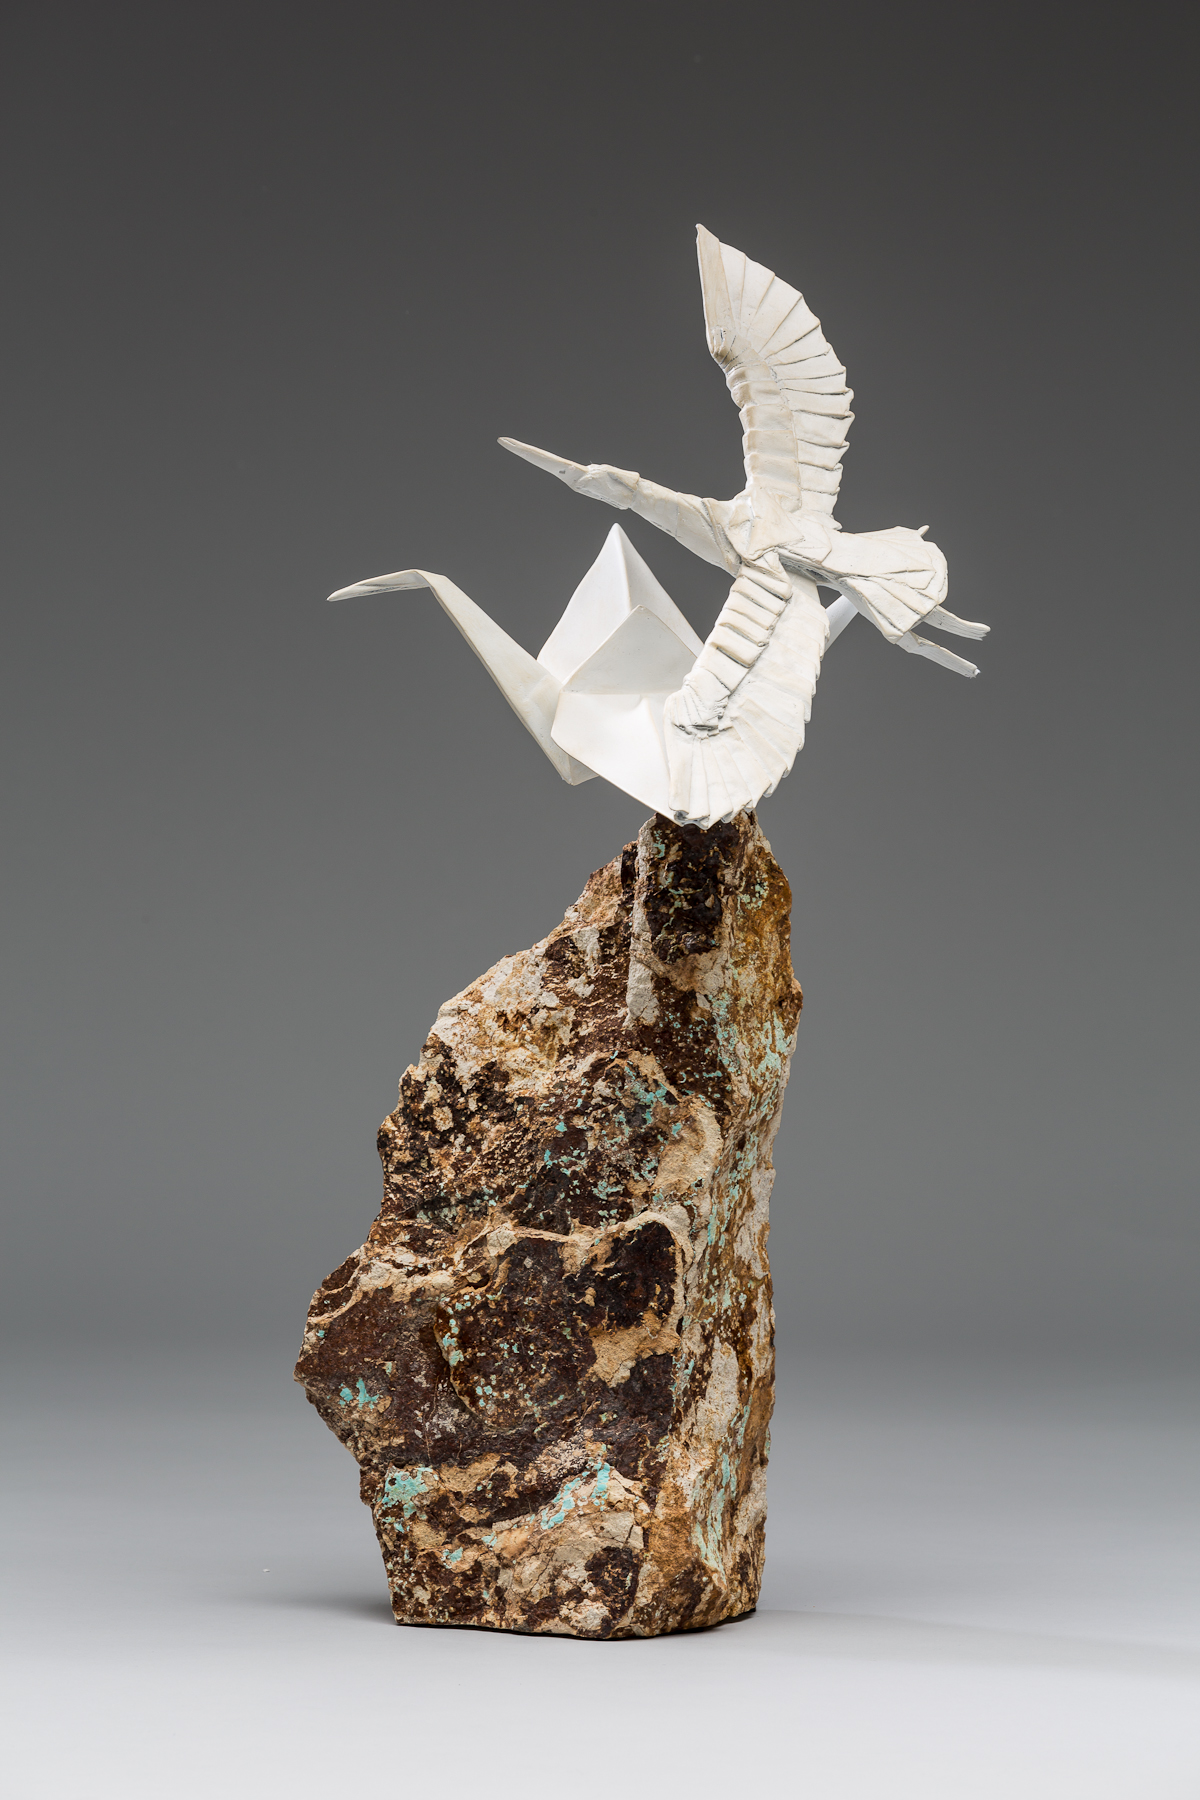 BoxLang-Flight of Folds maquette on stone.jpg